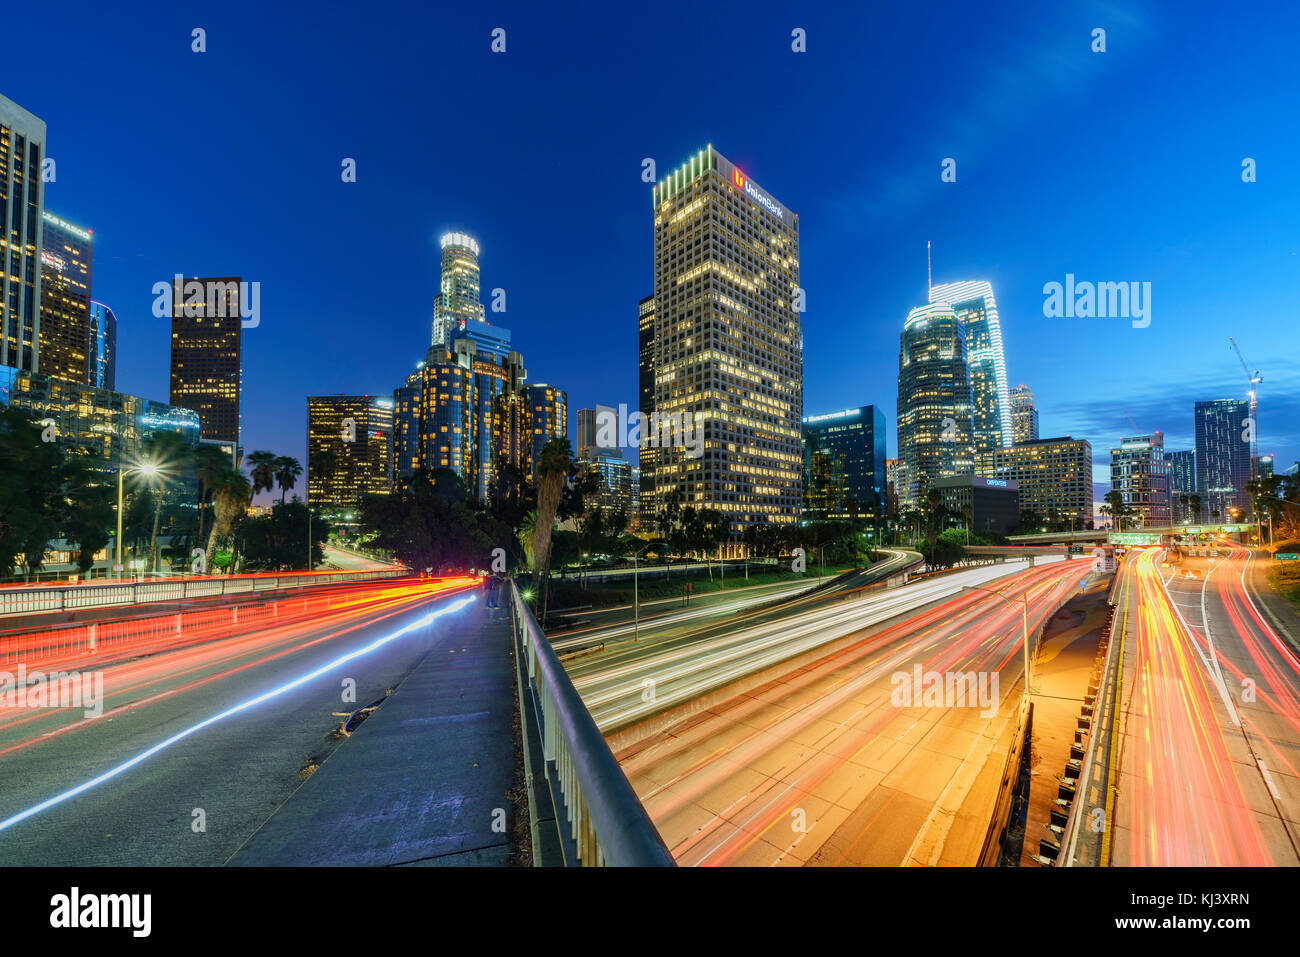 Los Angeles, NOV 5: Classical nightscape skyline of Los Angeles downtown on NOV 5, 2017 at California, United States - Stock Image